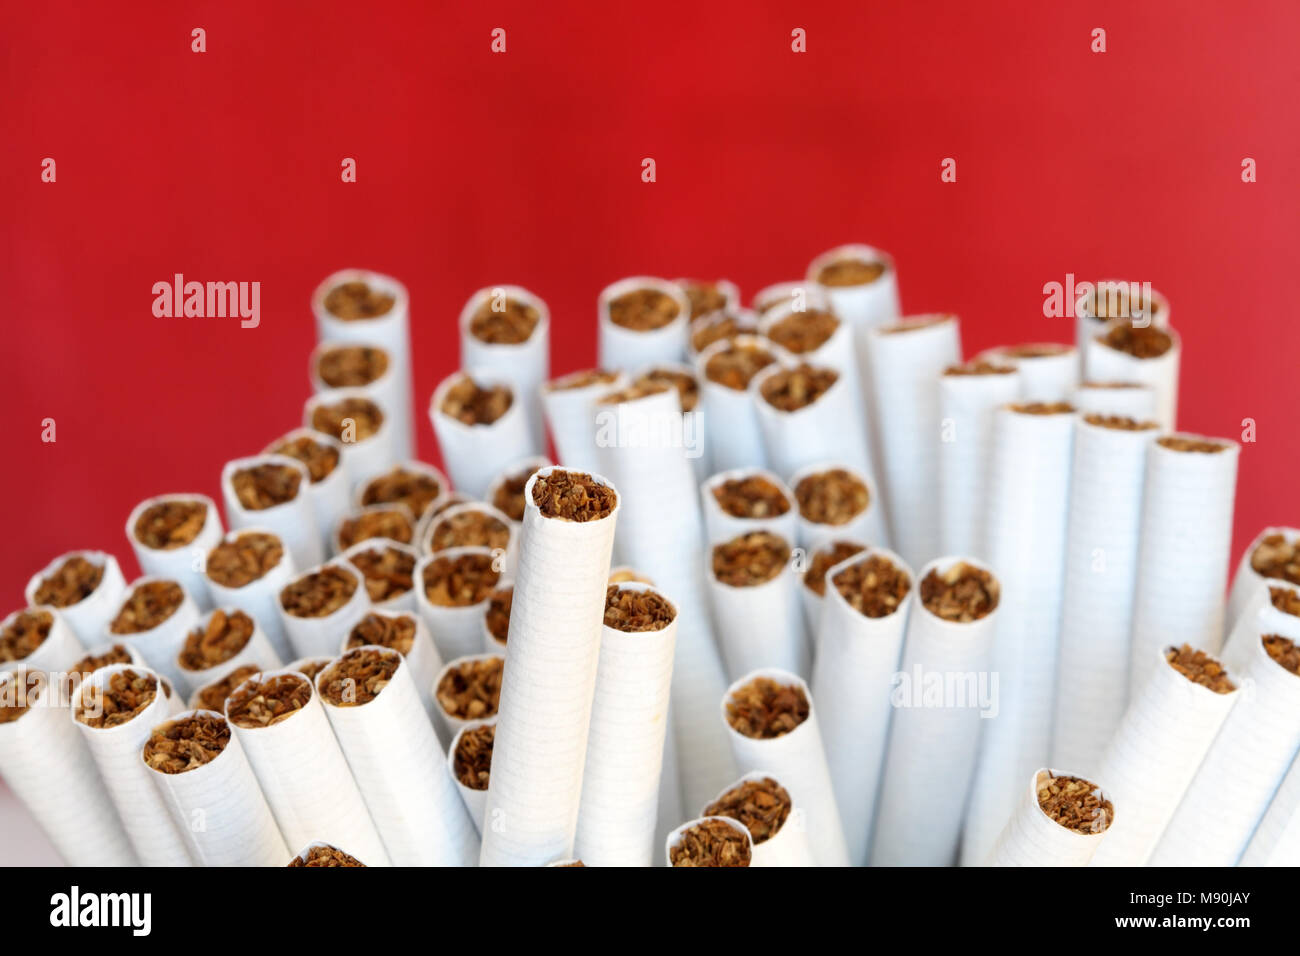 A lot of cigarettes on red background - Stock Image